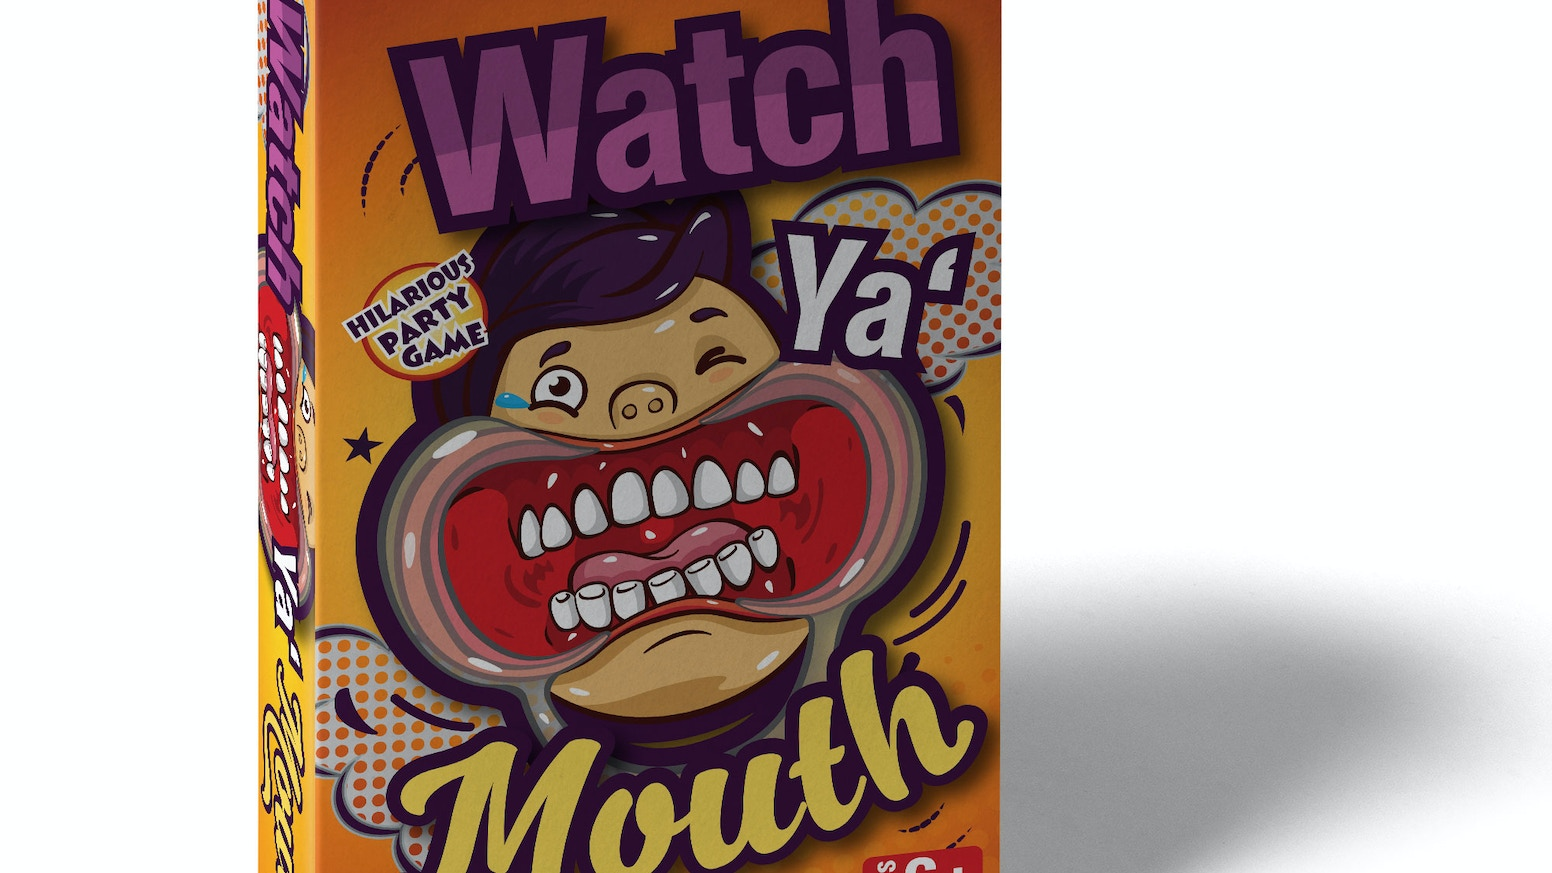 Watch Ya Mouth A Hilarious Mouthguard Party Game By Skyler Innovations Kickstarter